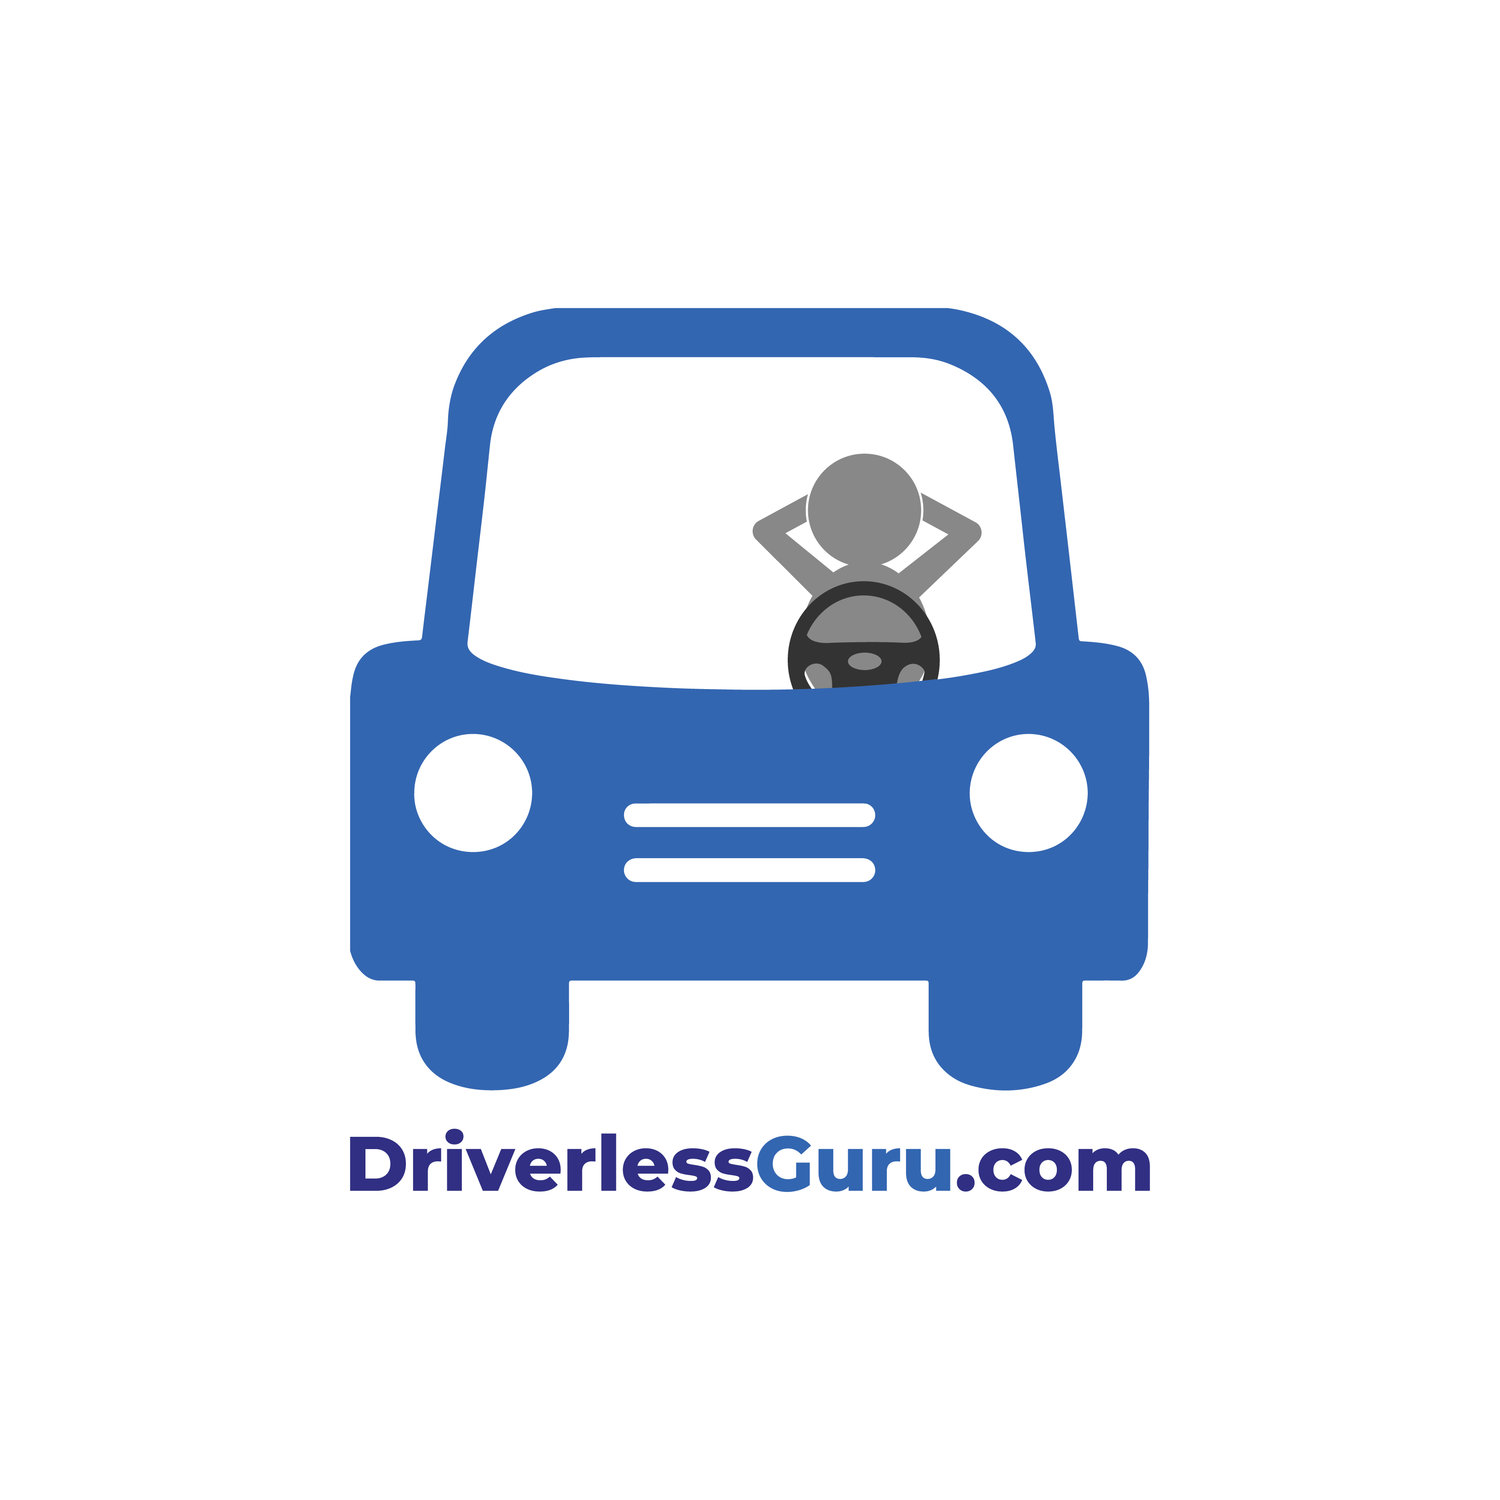 DriverlessGuru.com – your guide to the world of self-driving cars